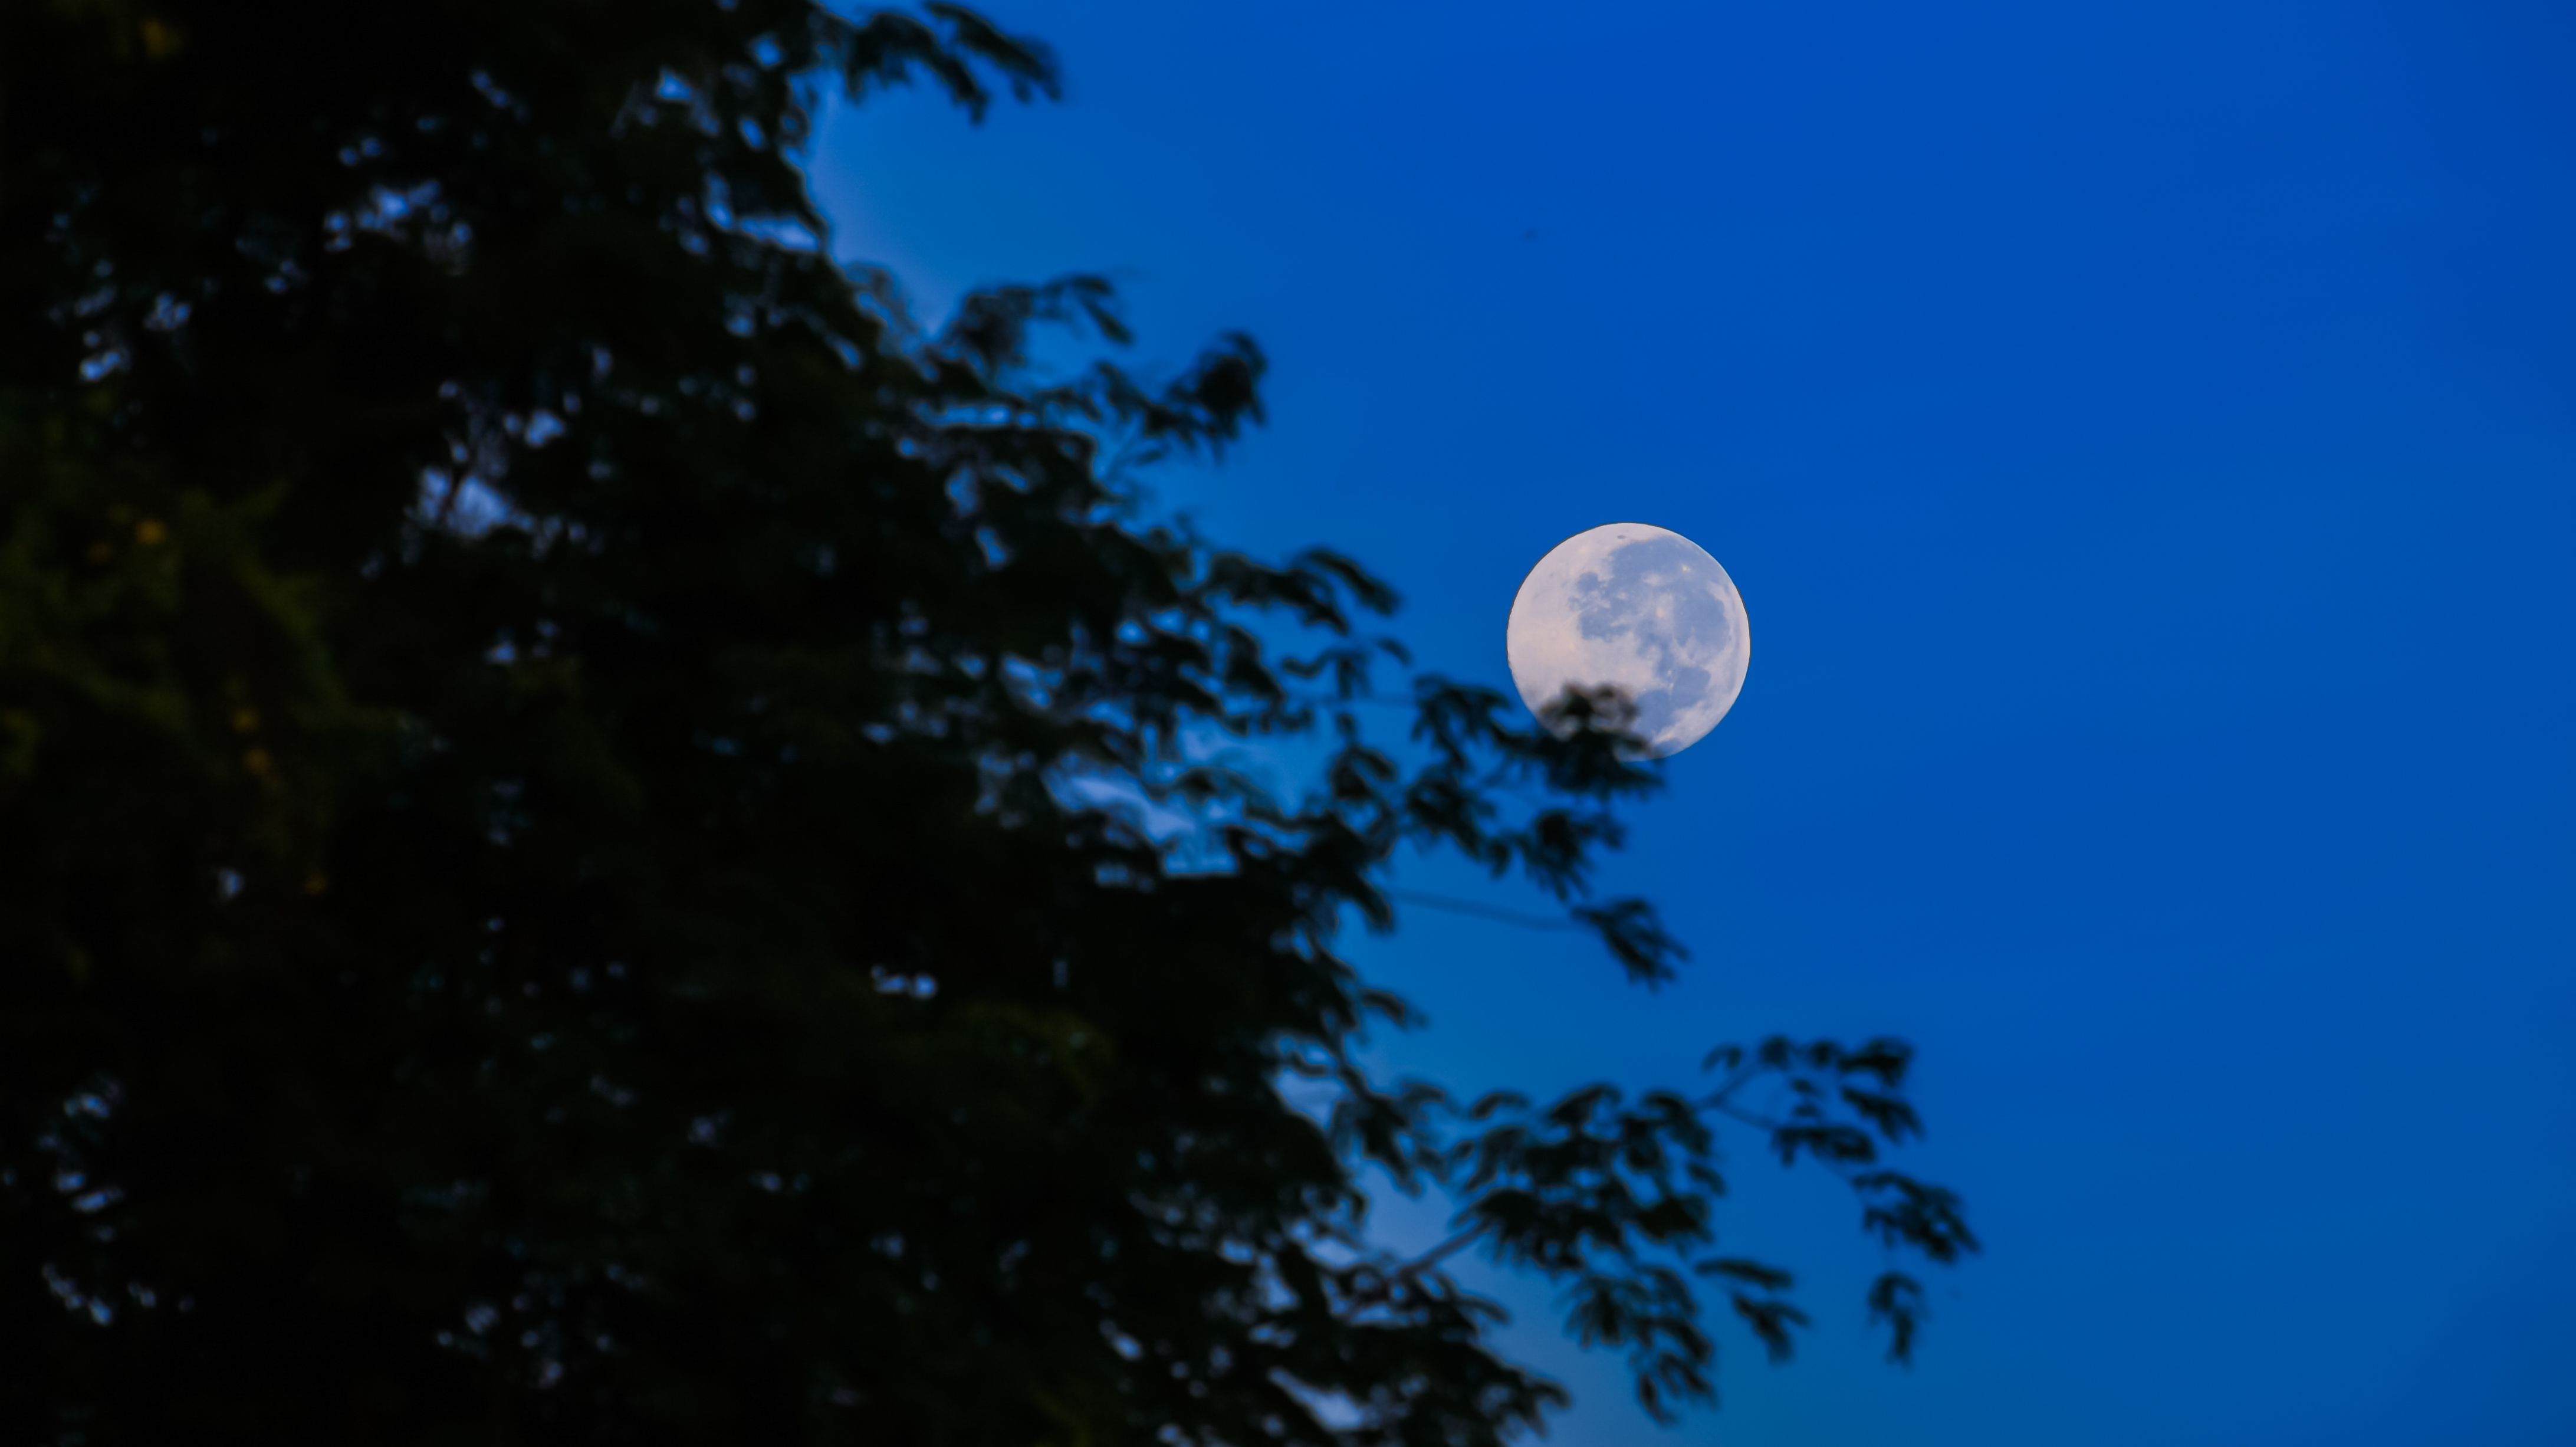 Rare Harvest 'Micromoon' Will Appear on Friday the 13th - Mental Floss